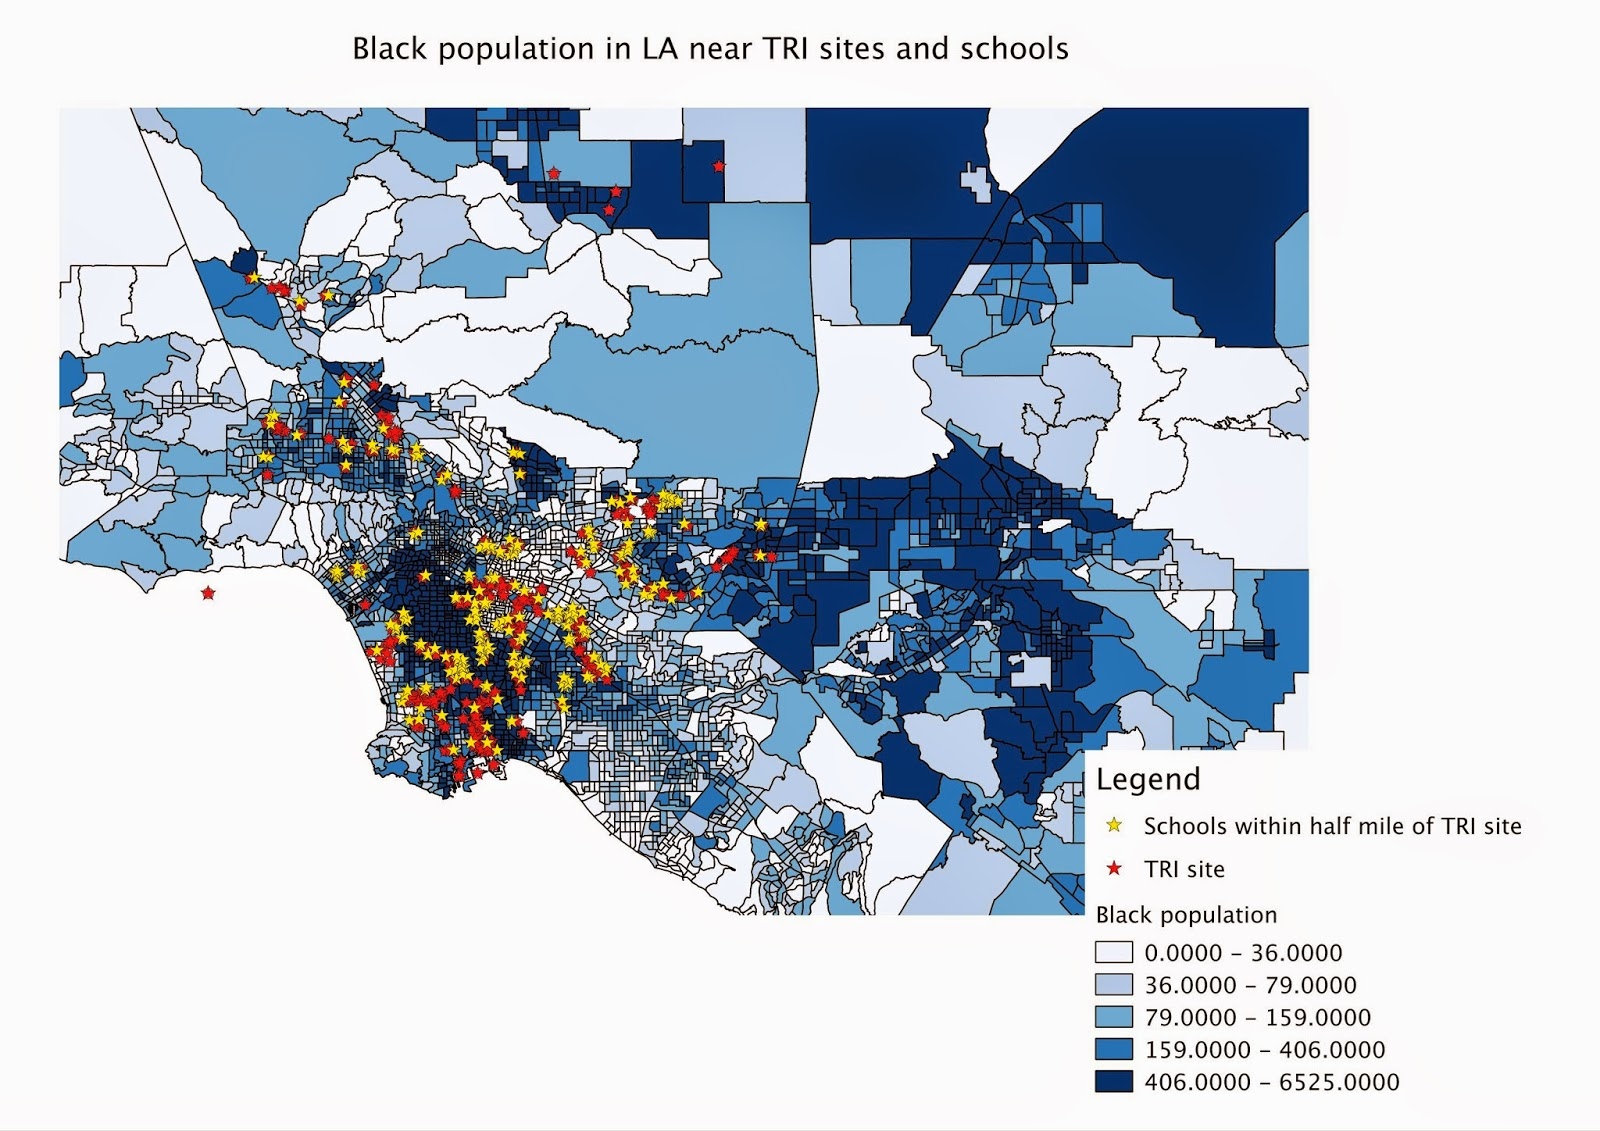 using data from the us health and human services website ucla mapshare s website i made maps using the data that for tri site locations in la county